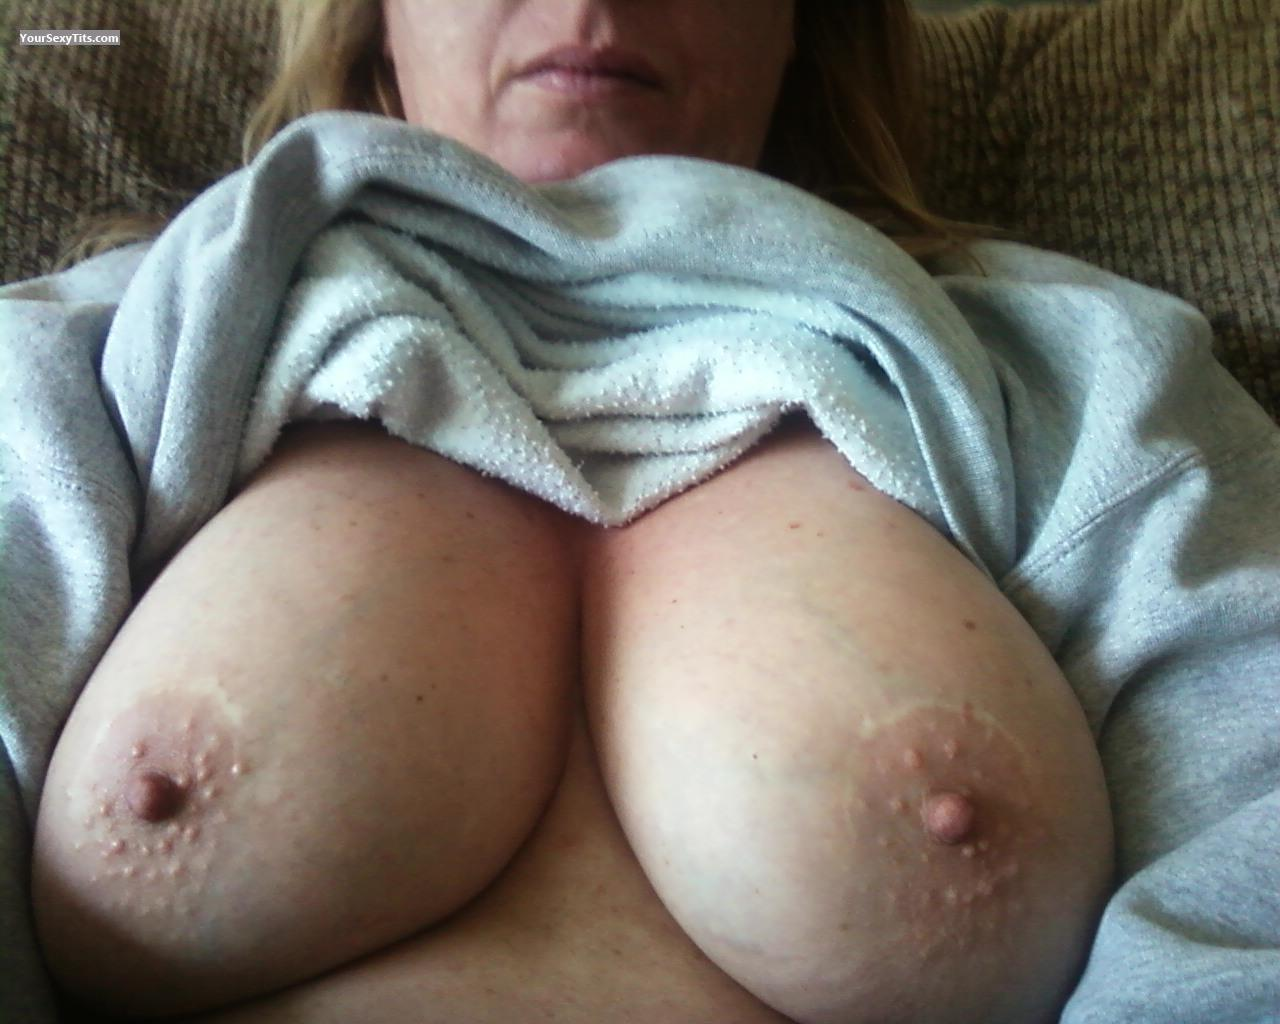 My Big Tits Selfie by These Ok?